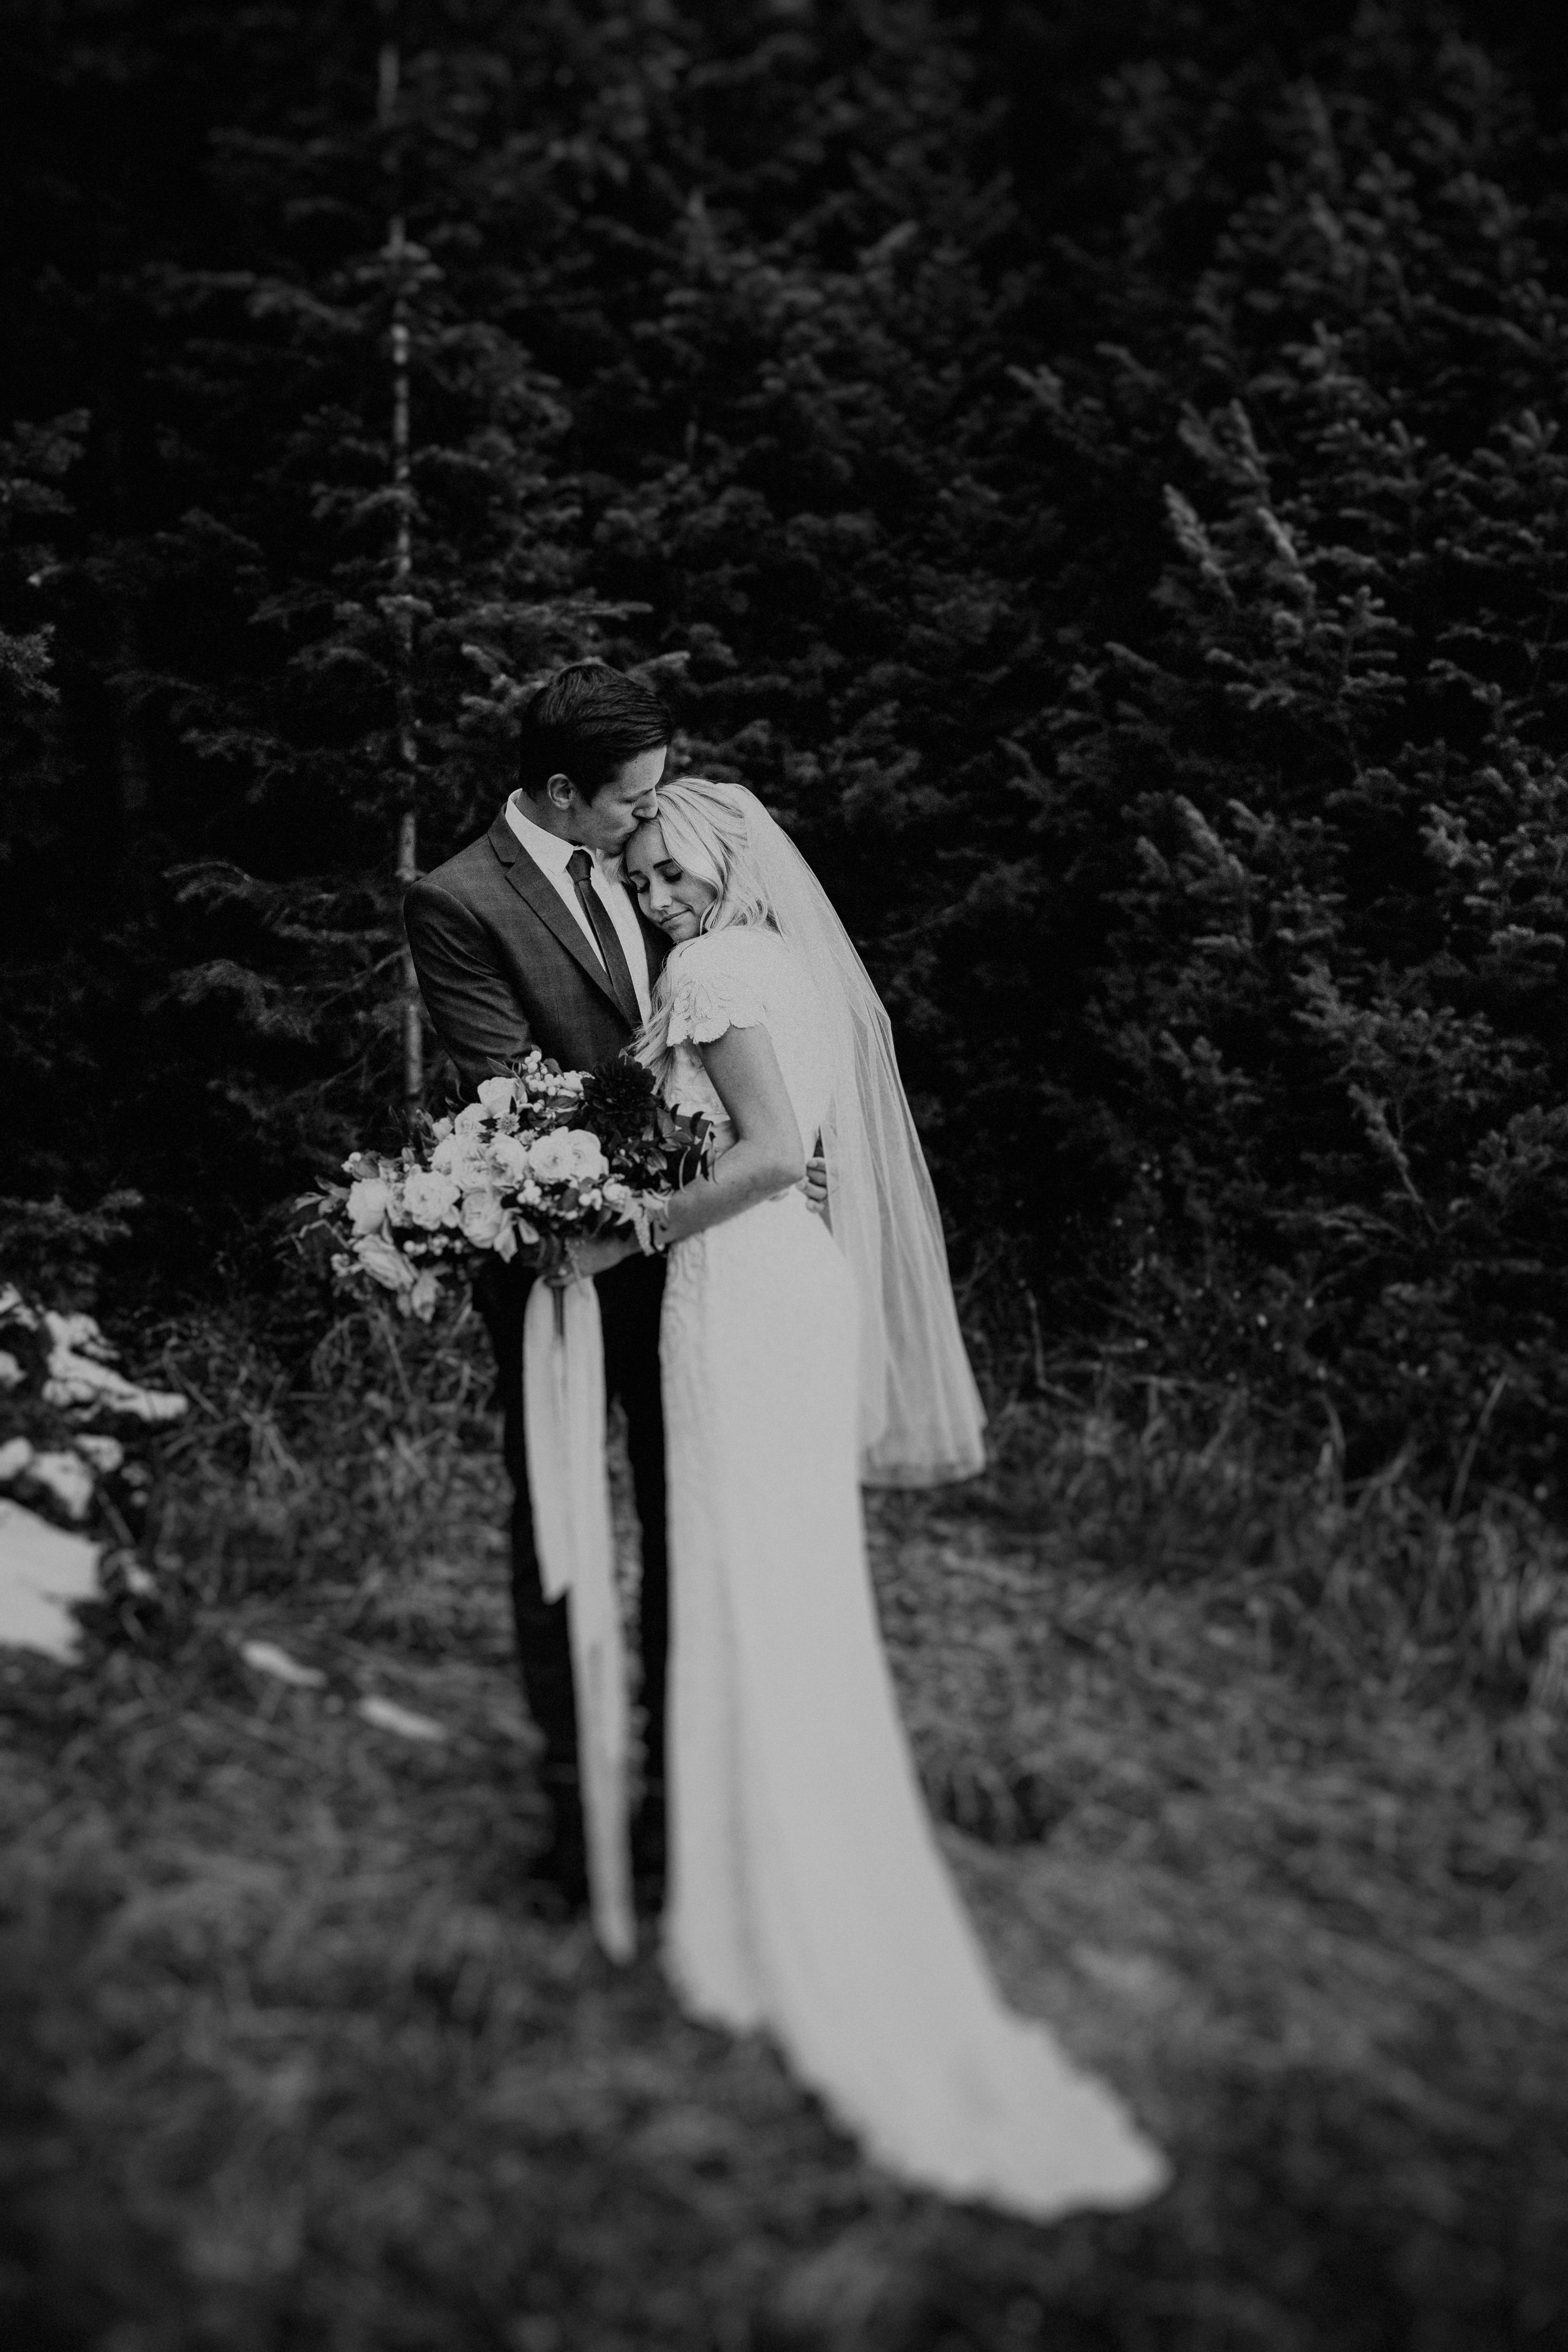 Far away shot of bride and groom in black and white in the forrest